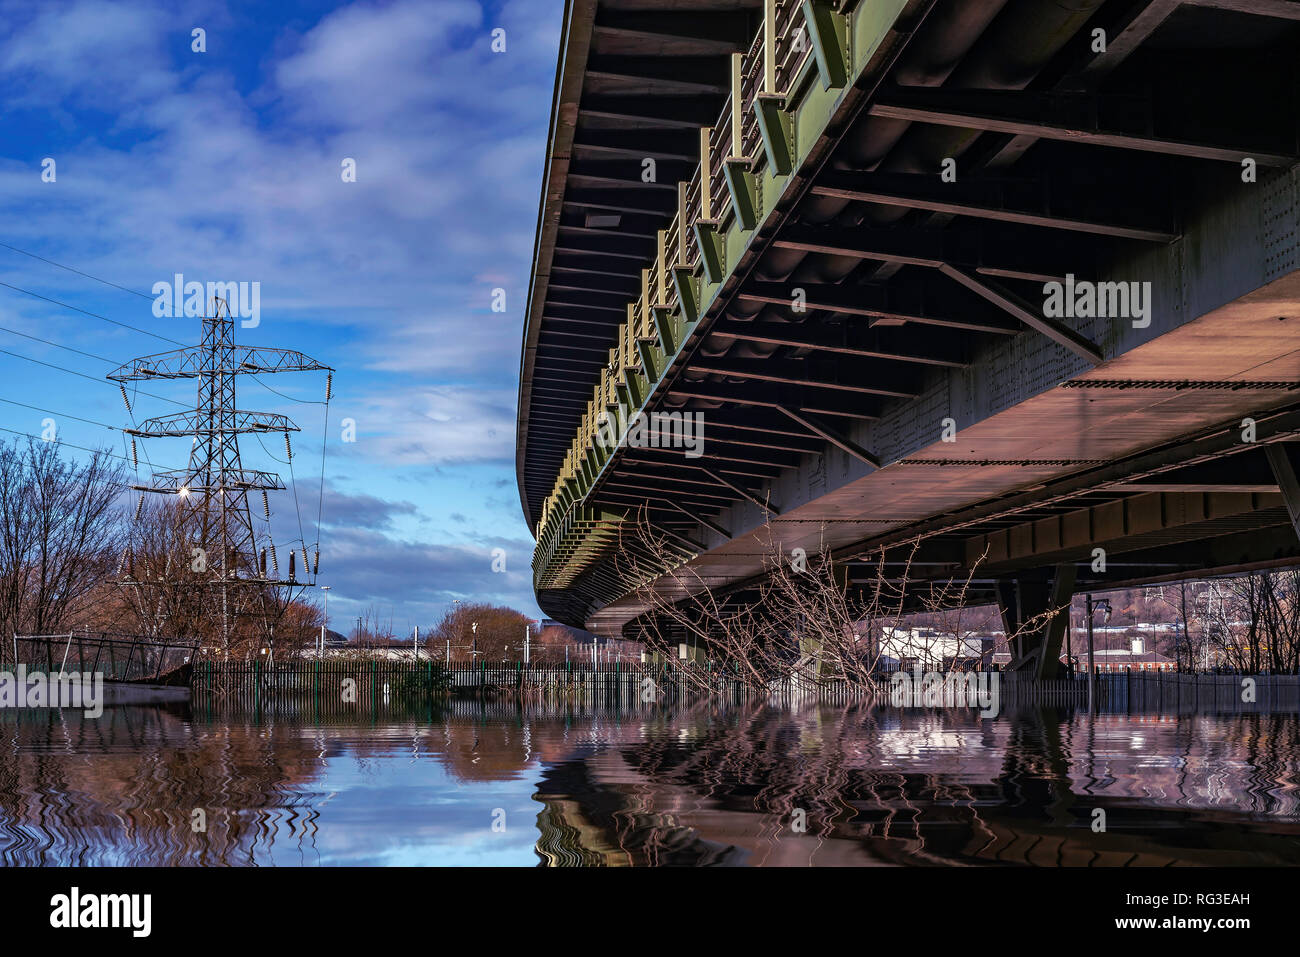 The Tinsley Viaduct, Junction 34, M1 Motorway, Sheffield, South Yorkshire, UK - Stock Image